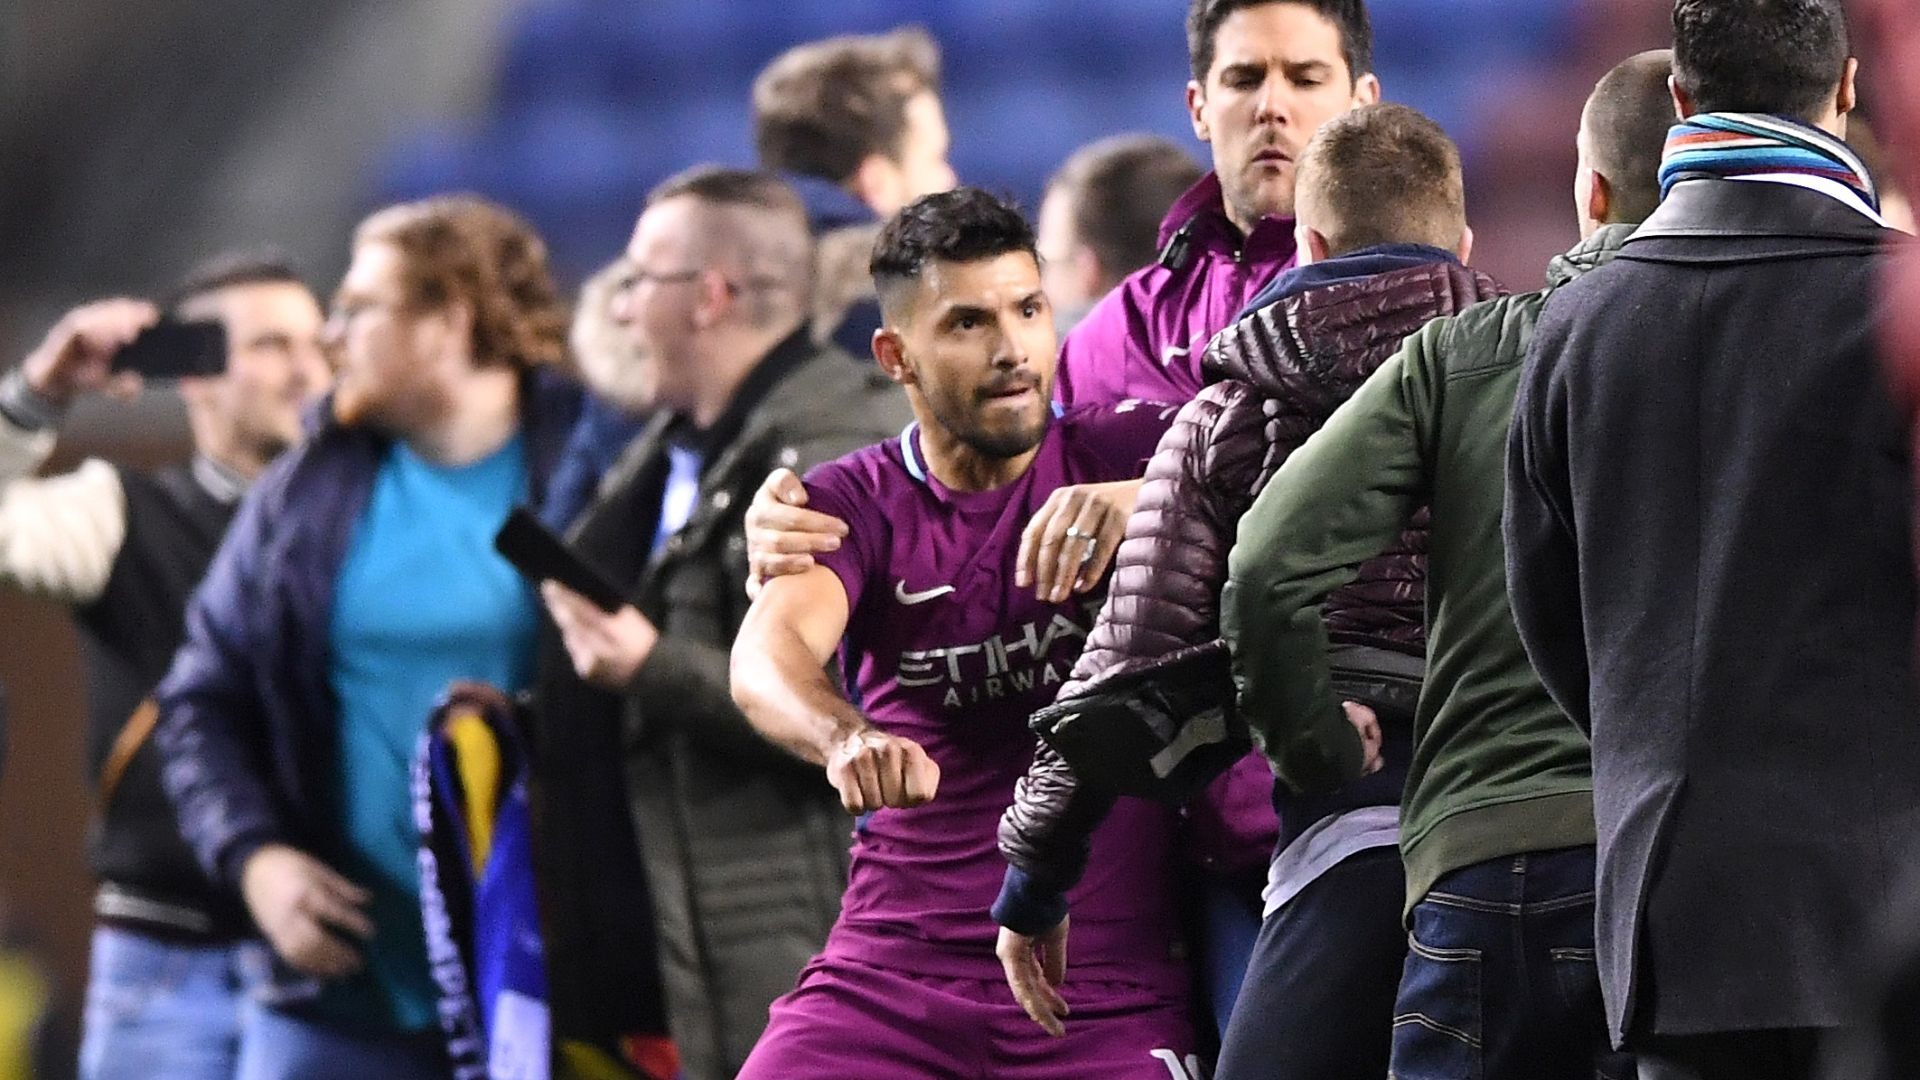 Aguero appears to clash with fan on pitch